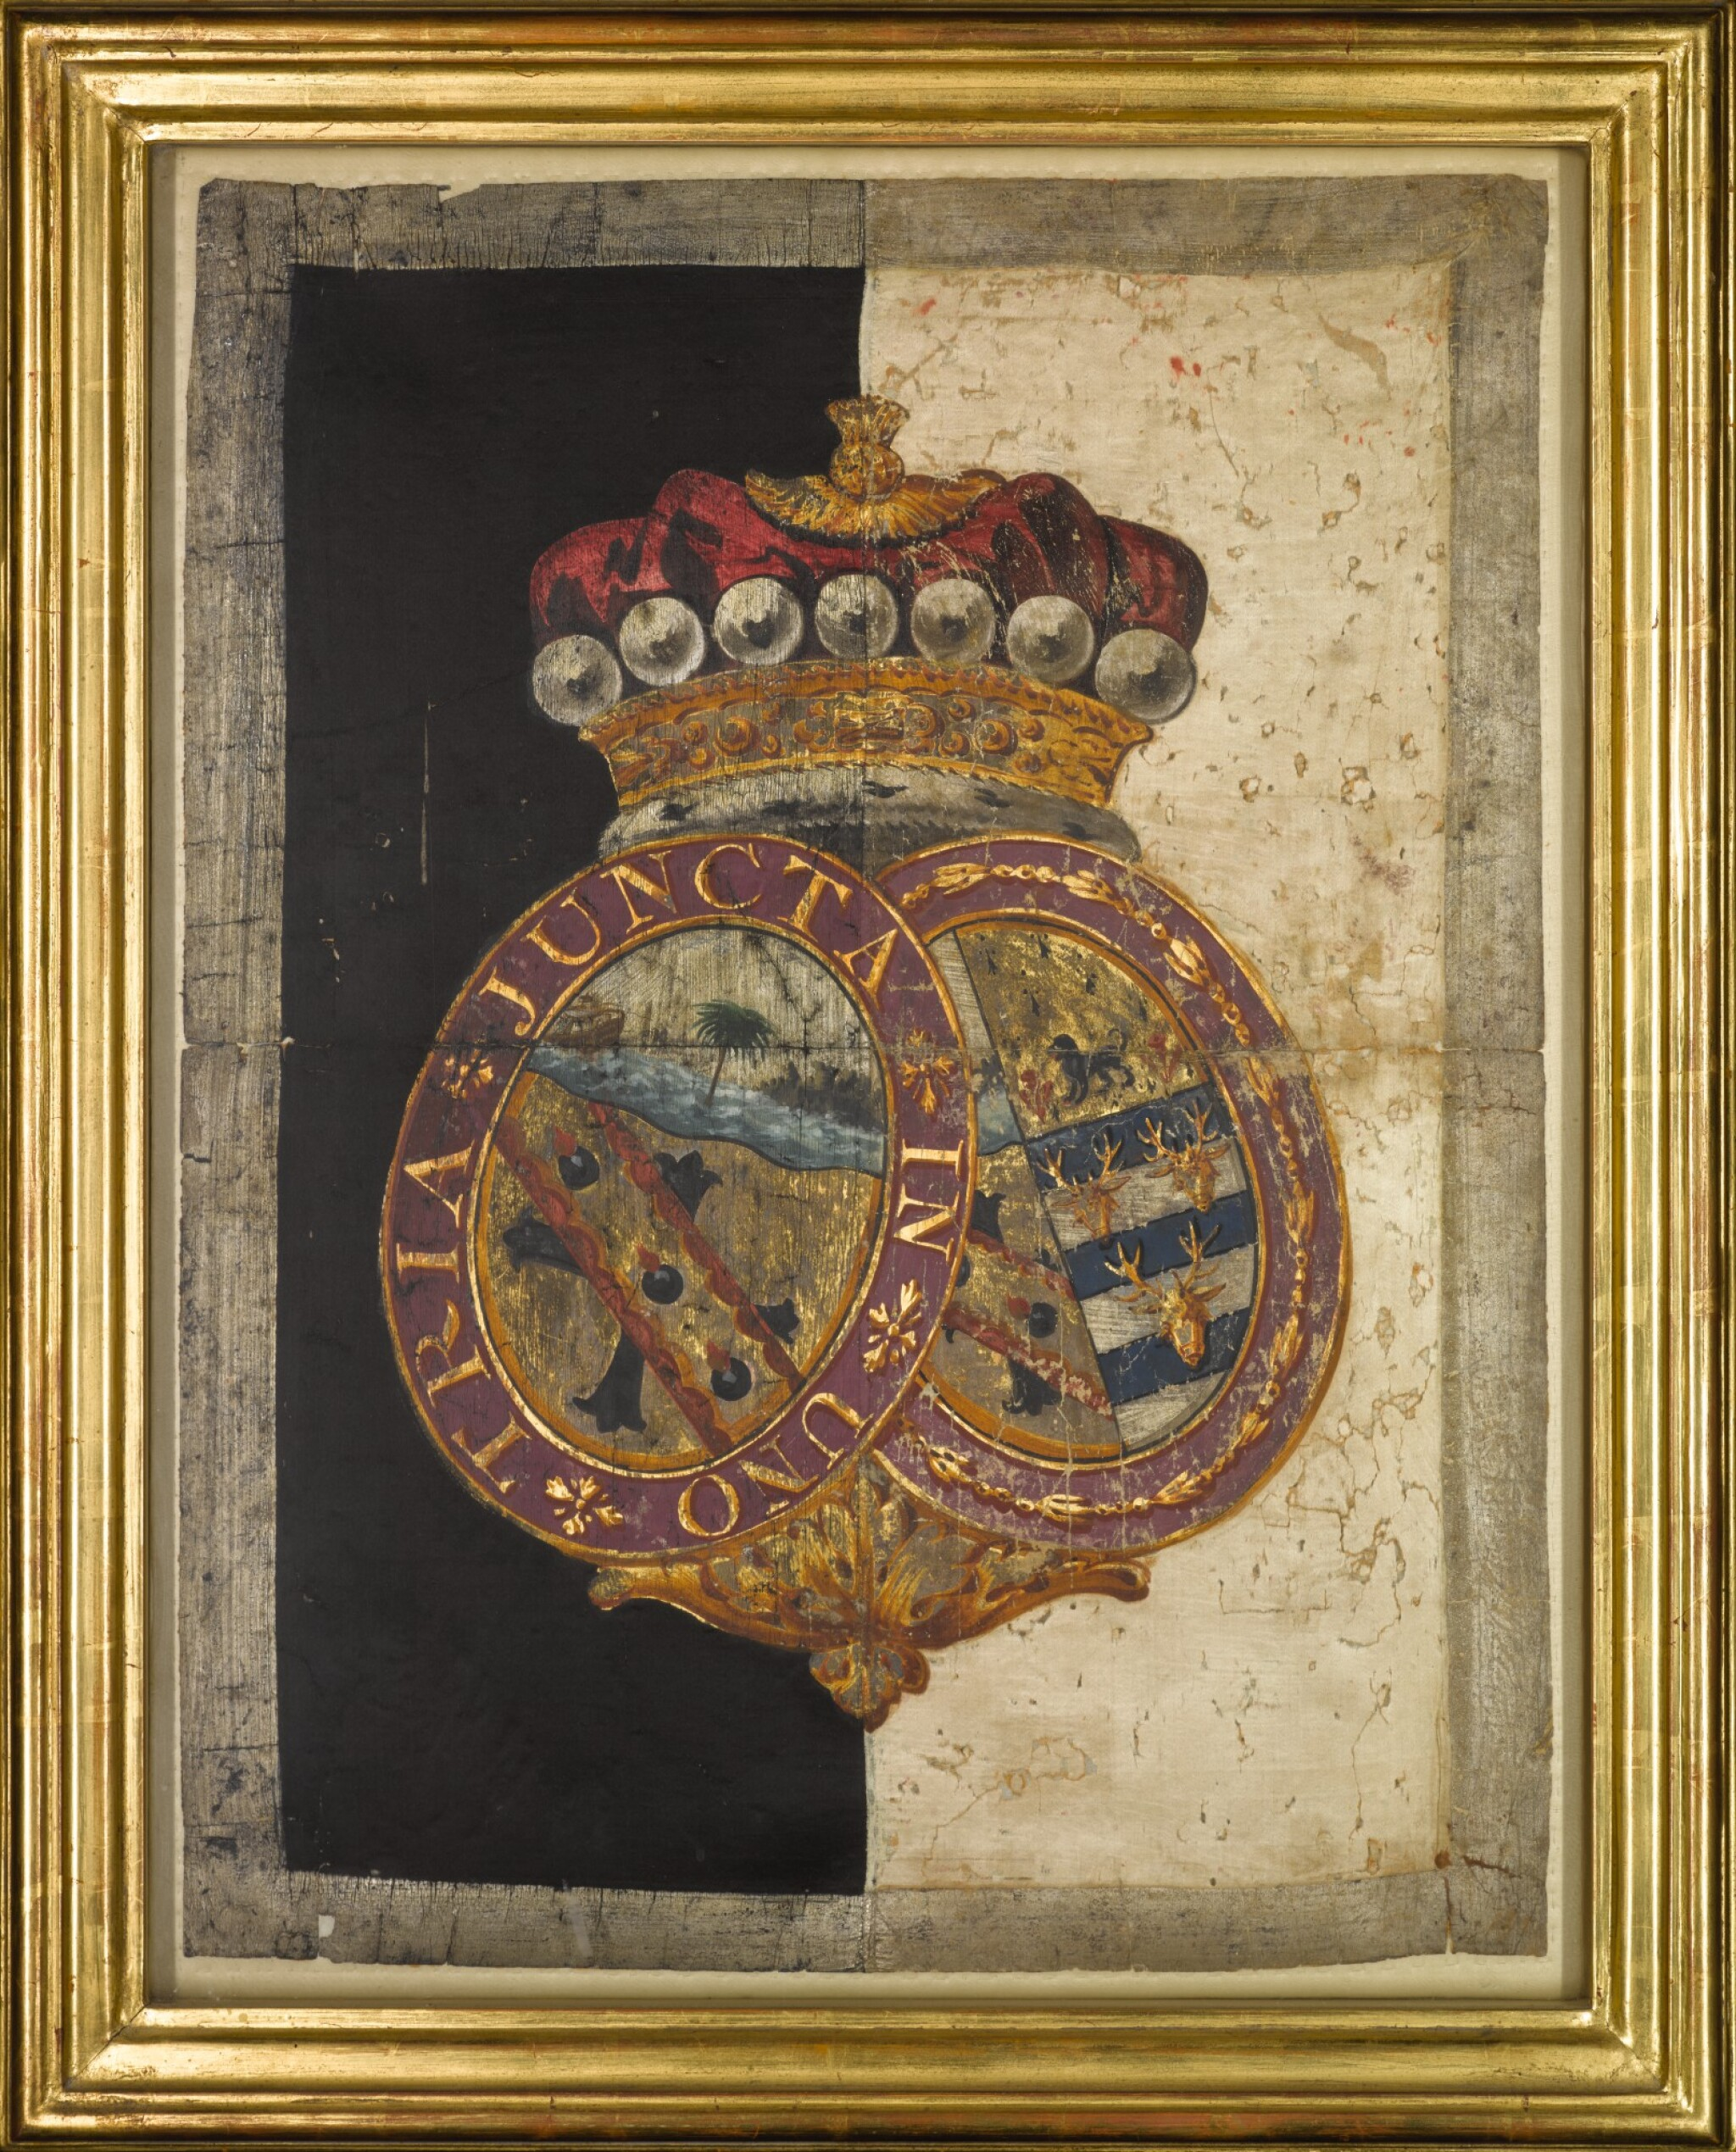 A fine painted silk hatchment from the State Funeral Carriage of Vice-Admiral Viscount Nelson, 1805